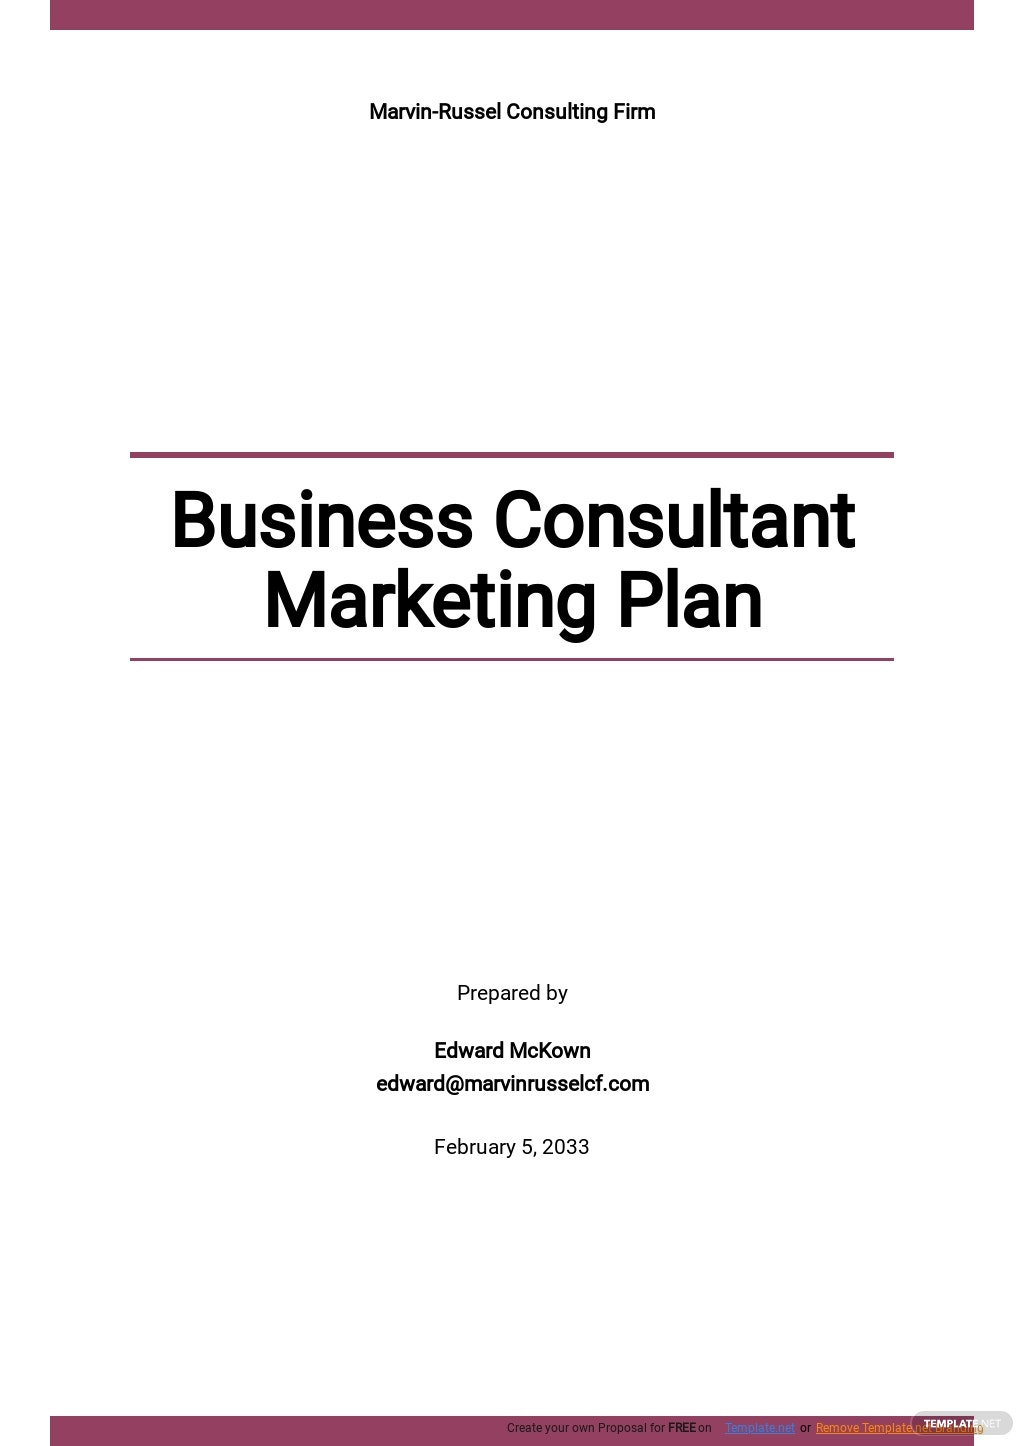 Business Consultant Marketing Plan Template.jpe